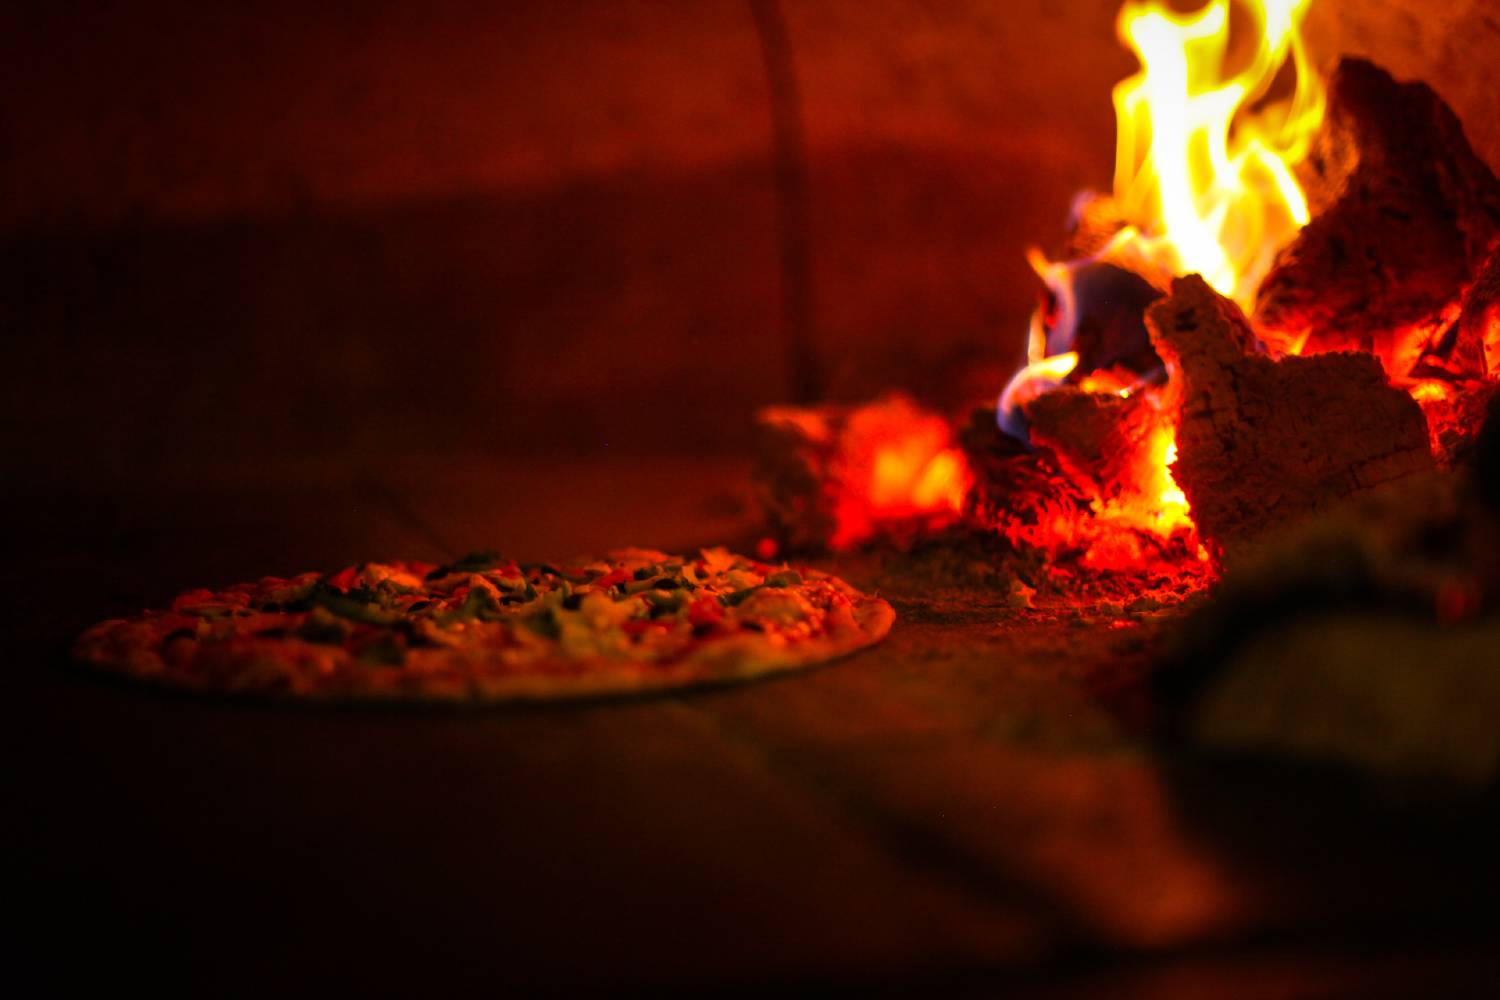 Pizza in a pizza oven with fire next to it